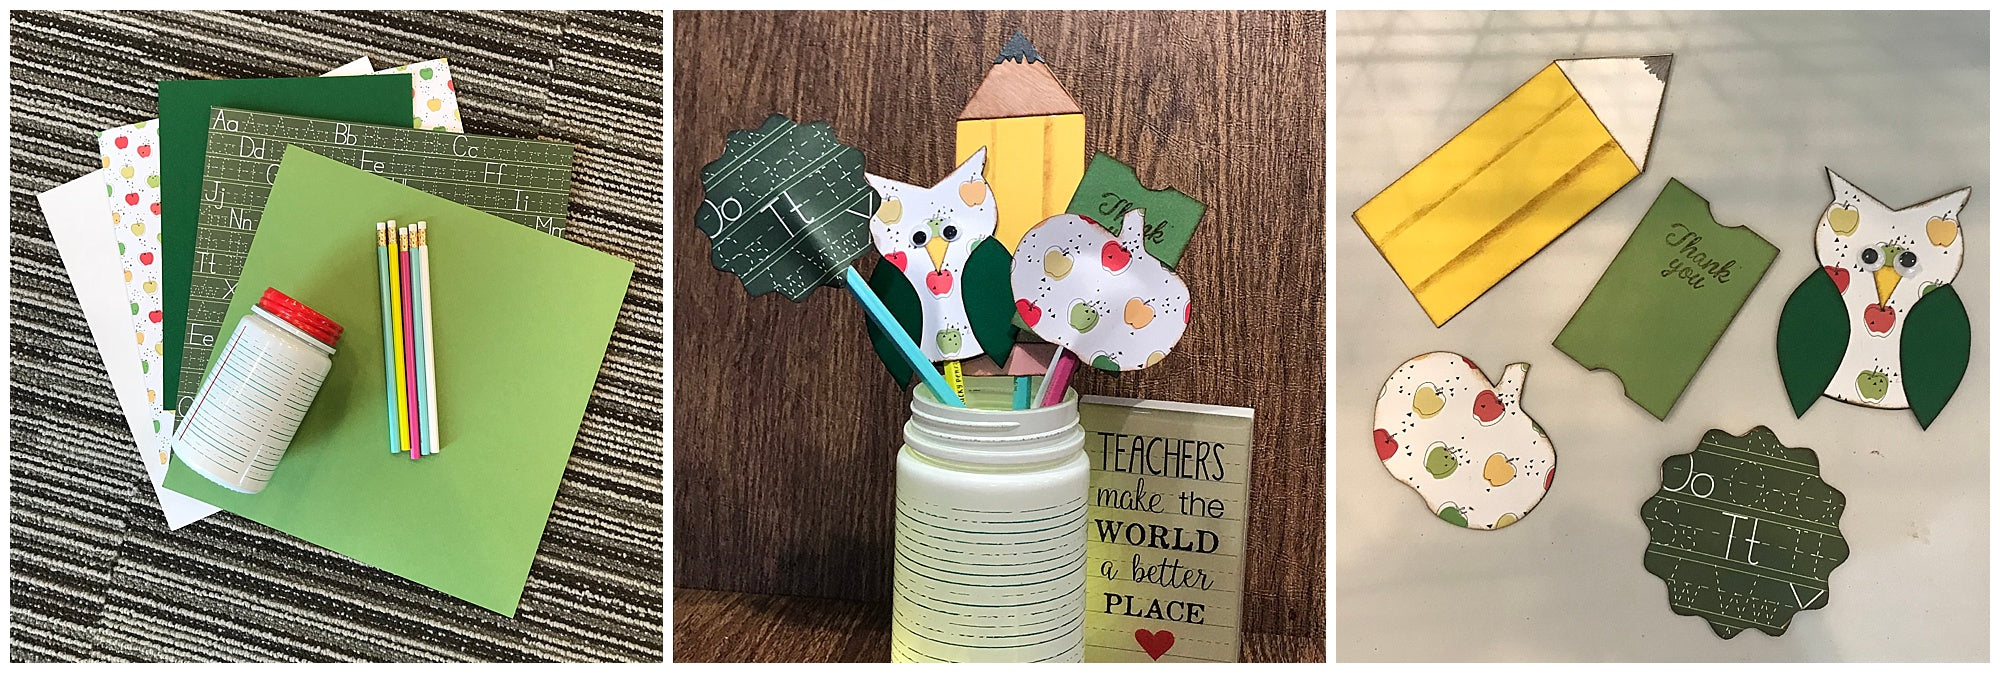 DIY Cardstock Paper Teacher Appreciation Pencil Toppers Supplies